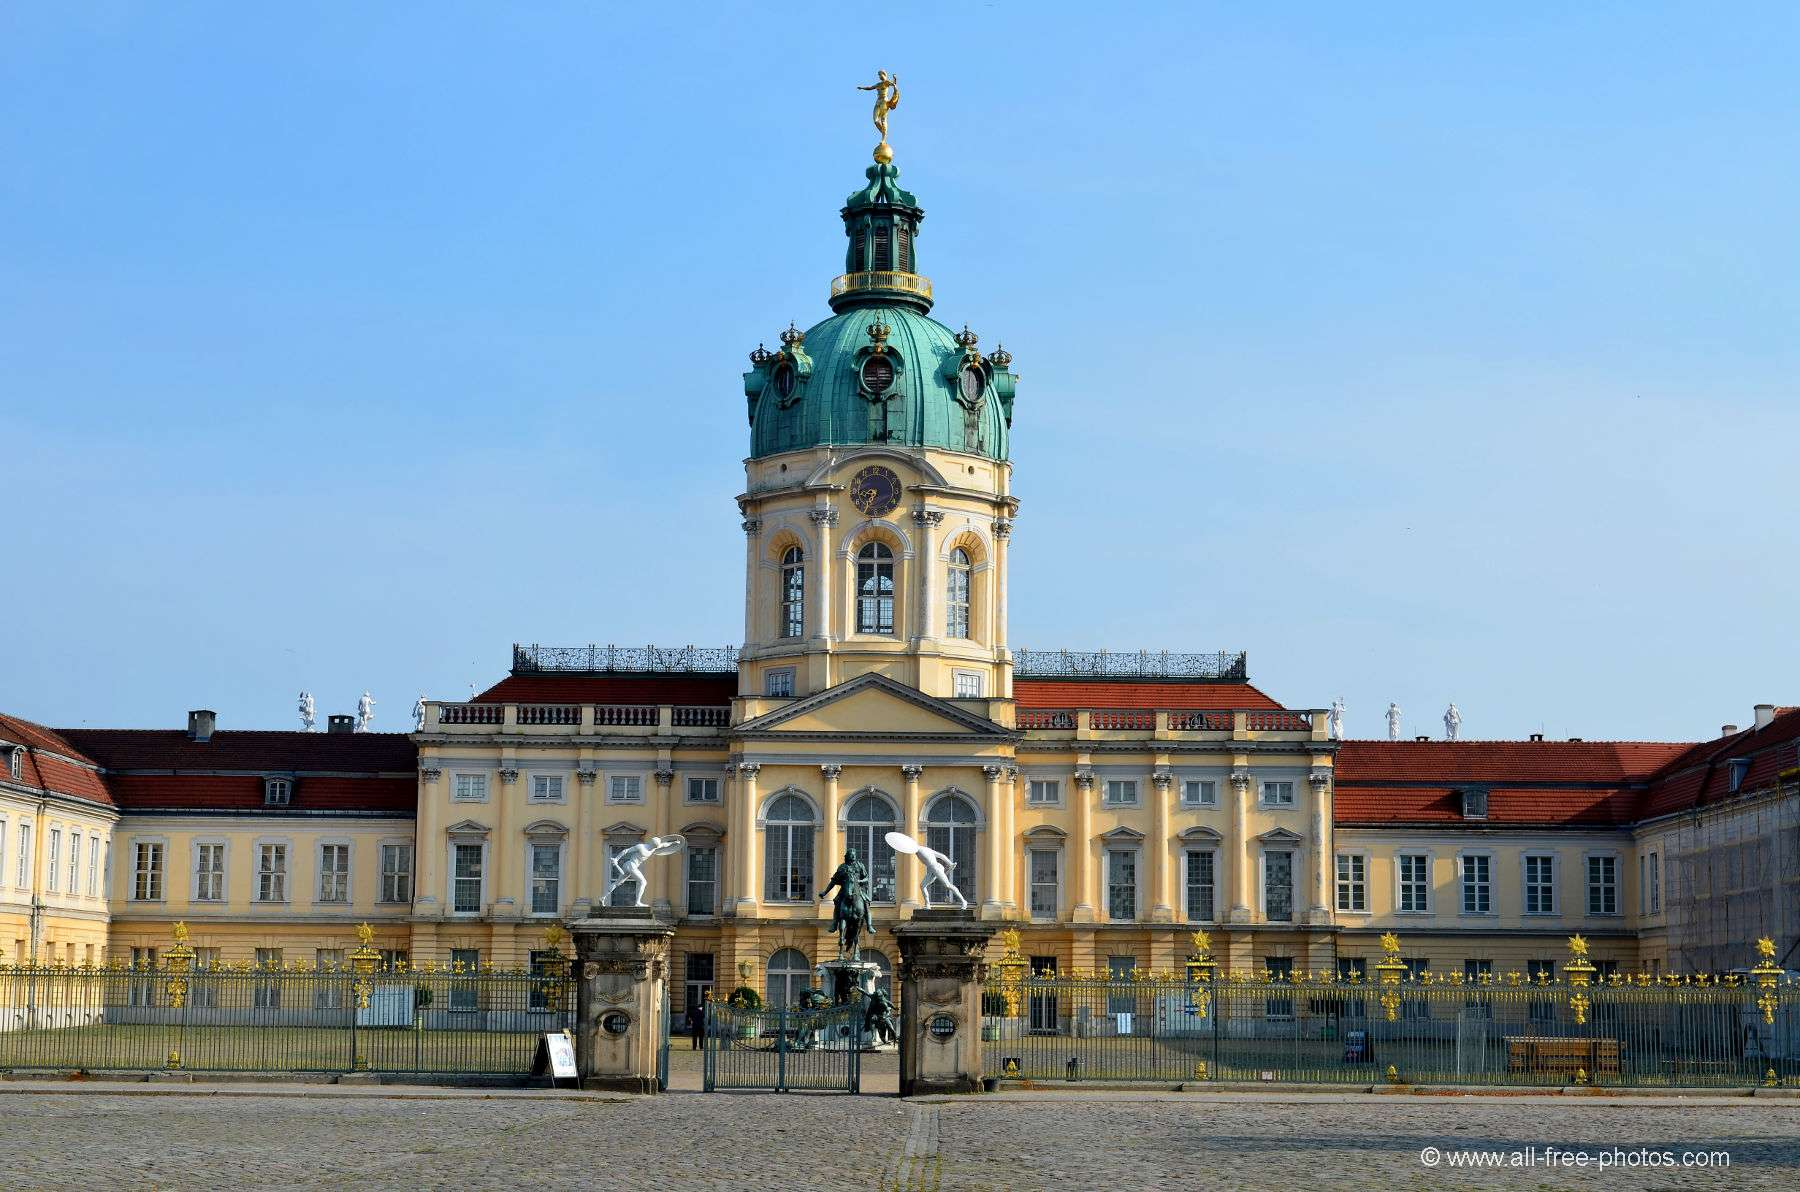 Home Galleries Castles and palaces Castles in Germany Charlottenburg ...: www.all-free-photos.com/show/showphoto.php?idph=PI89145&lang=fr?em...